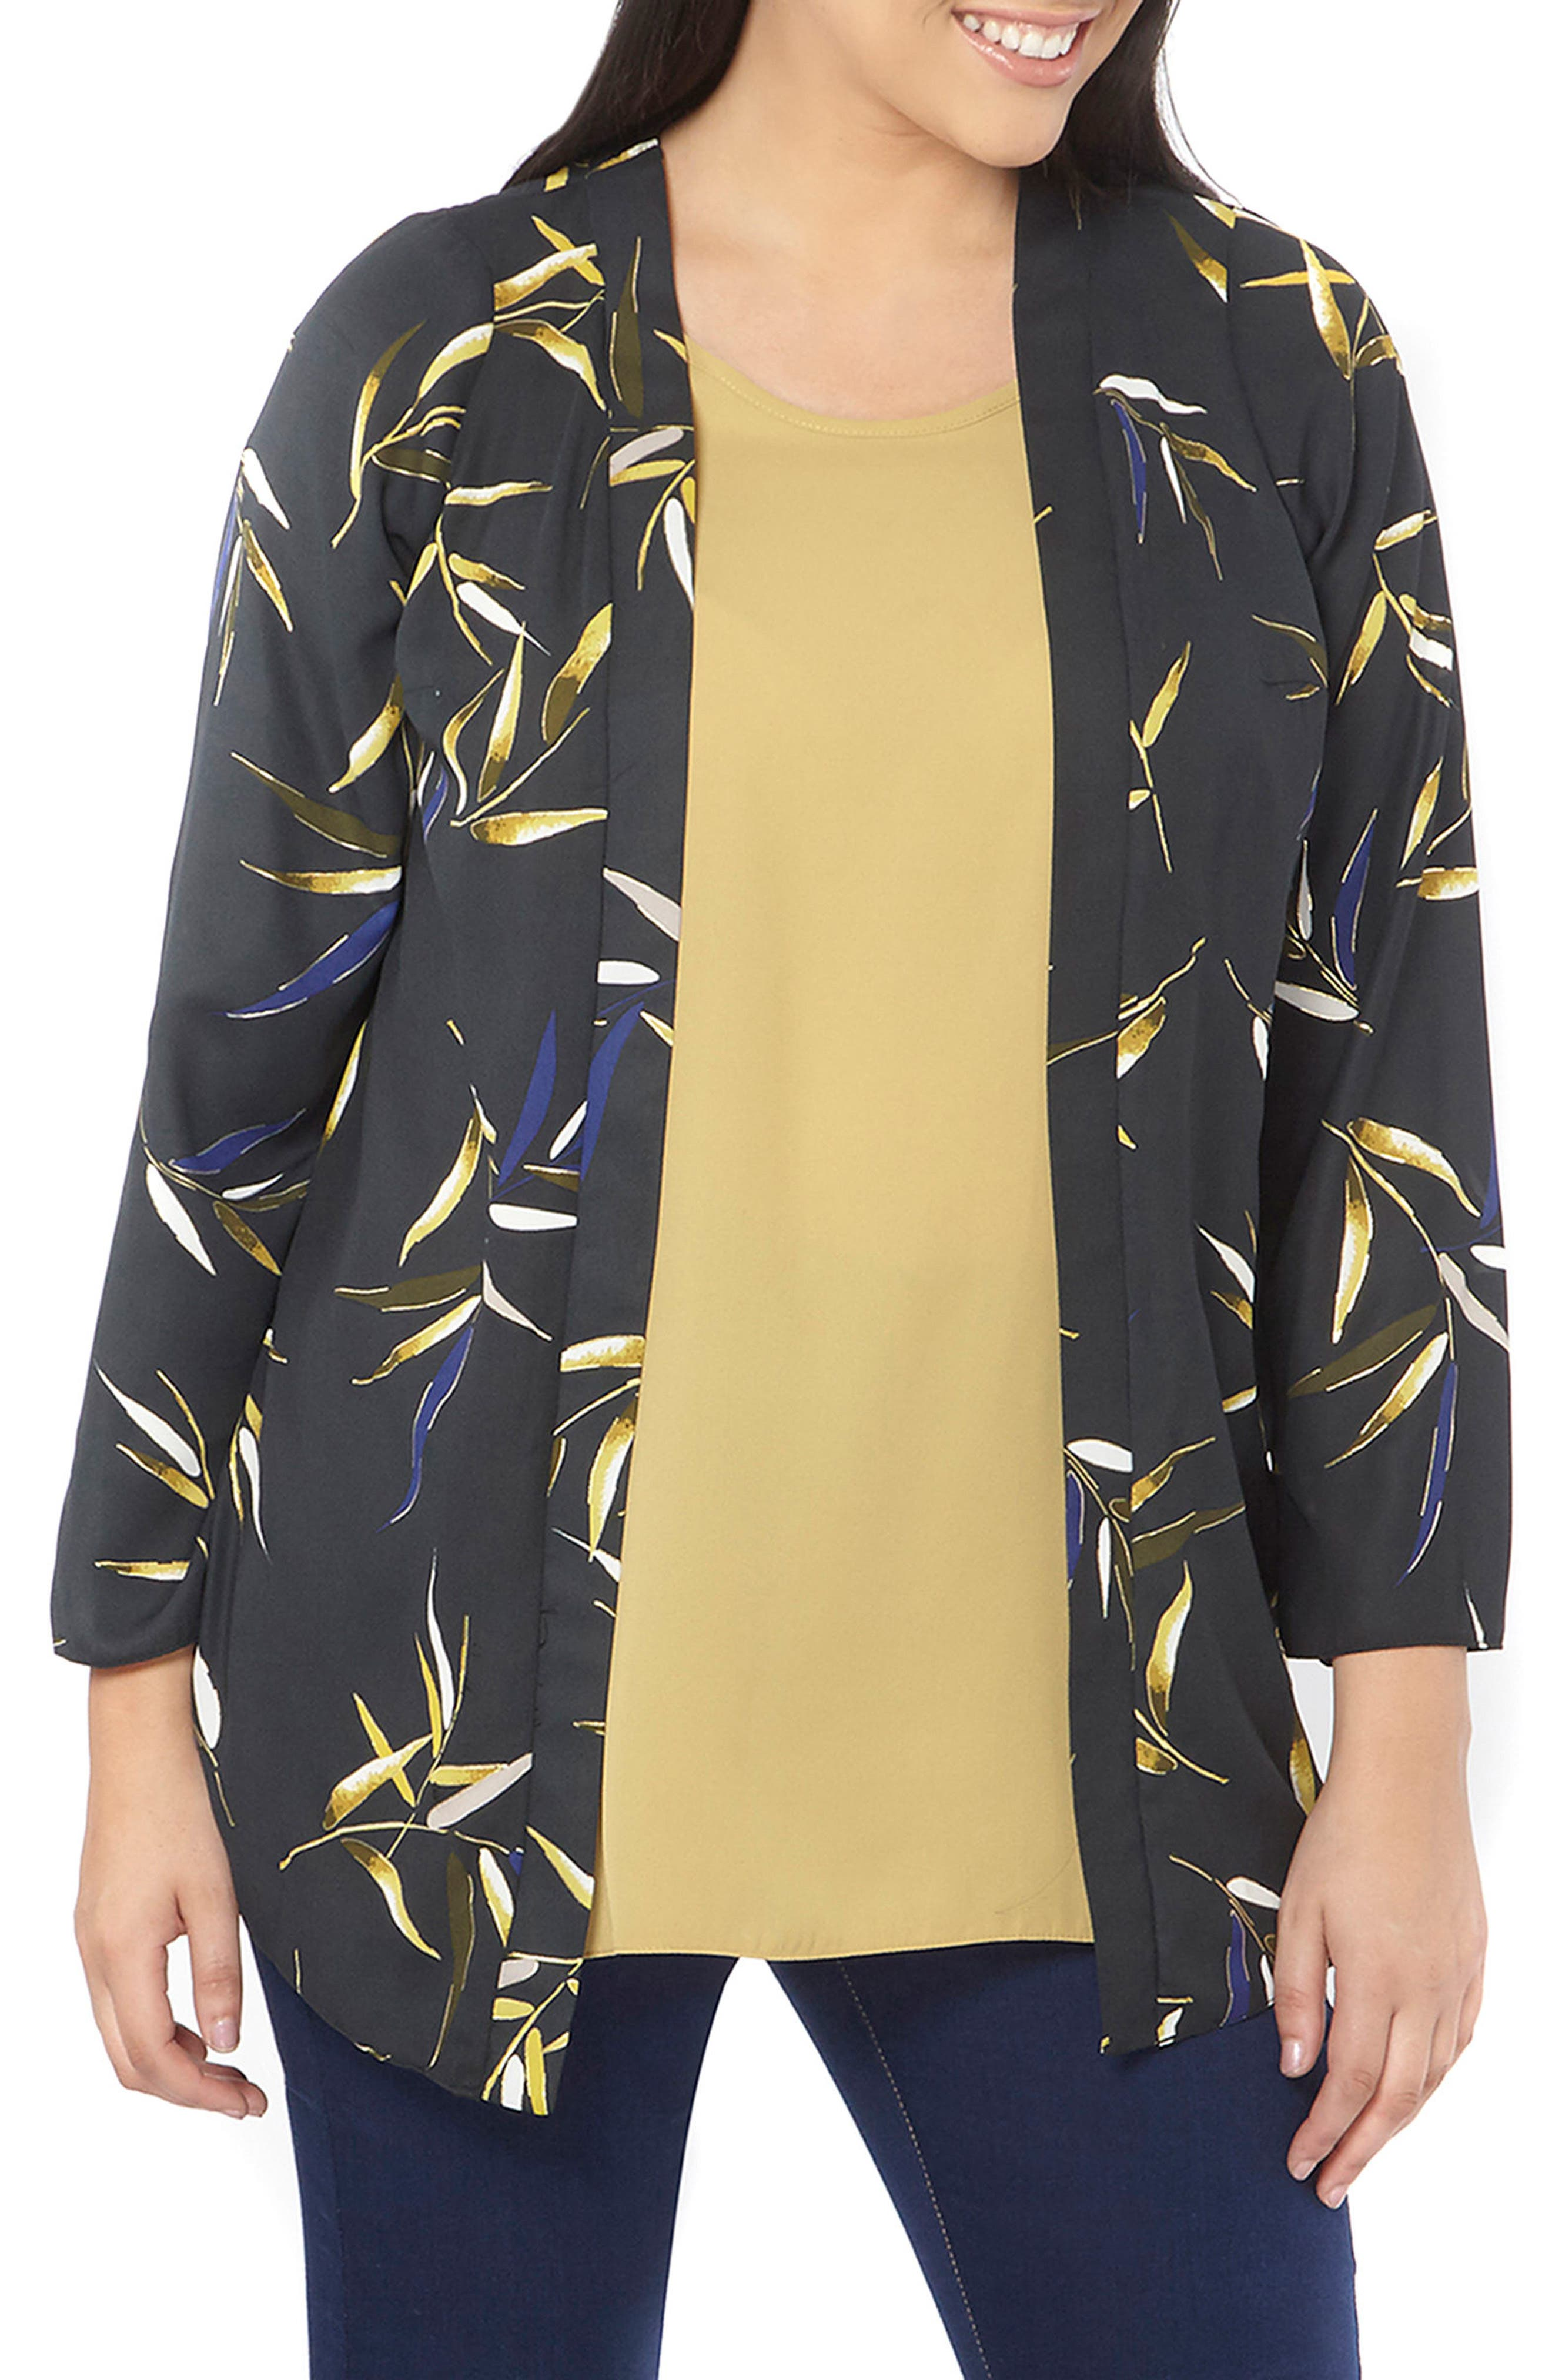 Alternate Image 1 Selected - Evans Foiled Leaf Print Kimono Jacket (Plus Size)